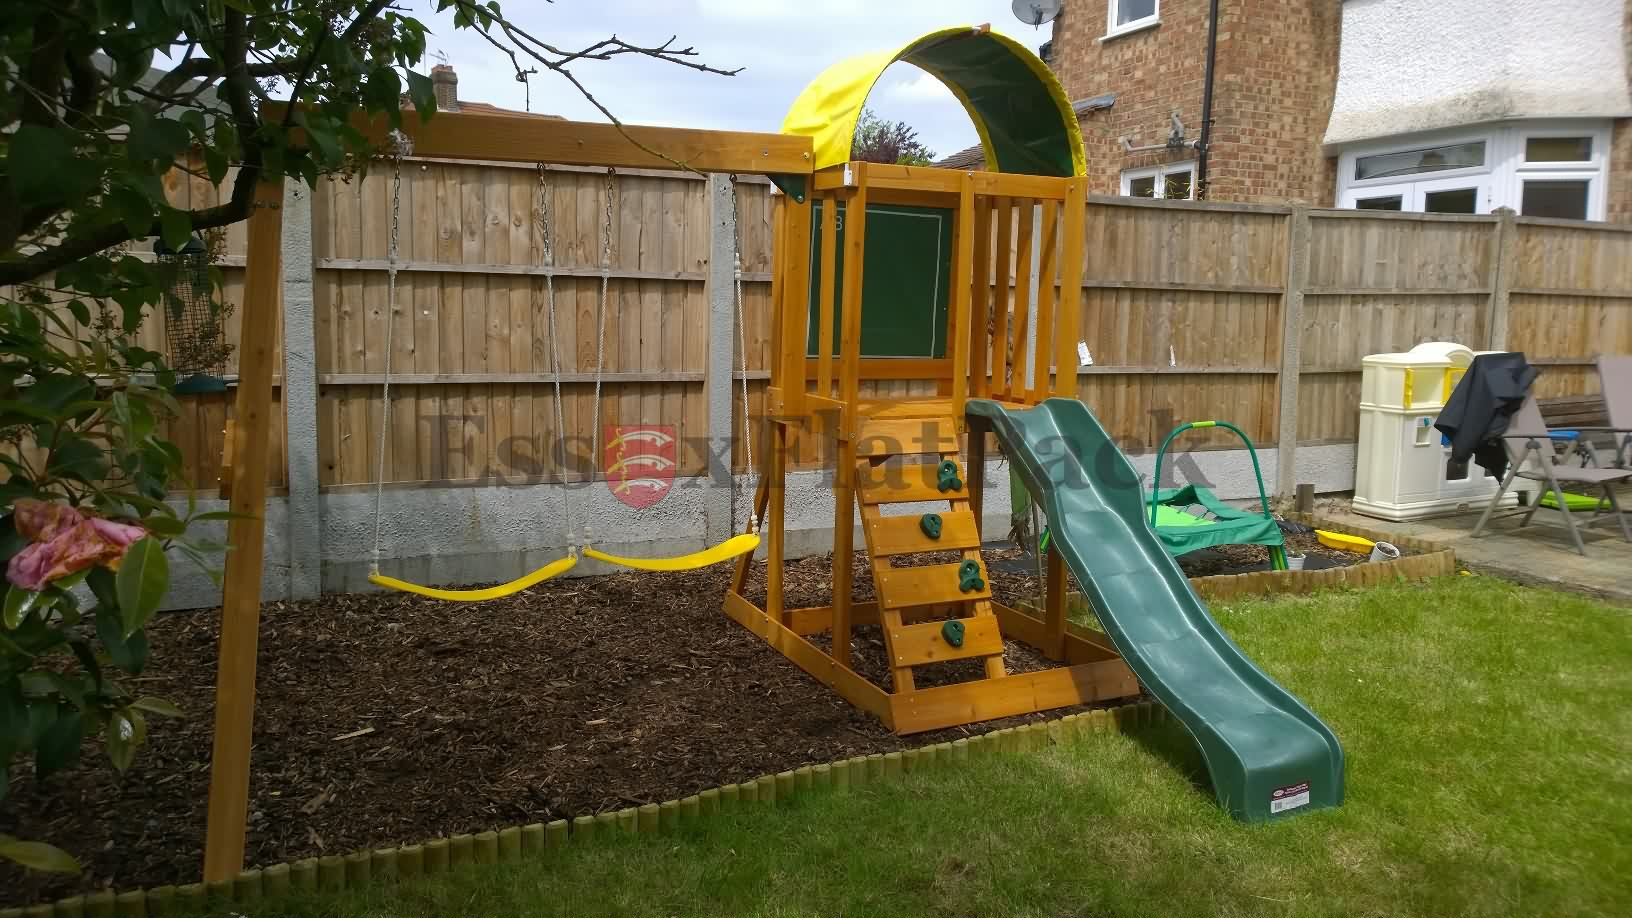 essexflatpack-playhouse-20150524121634.jpg